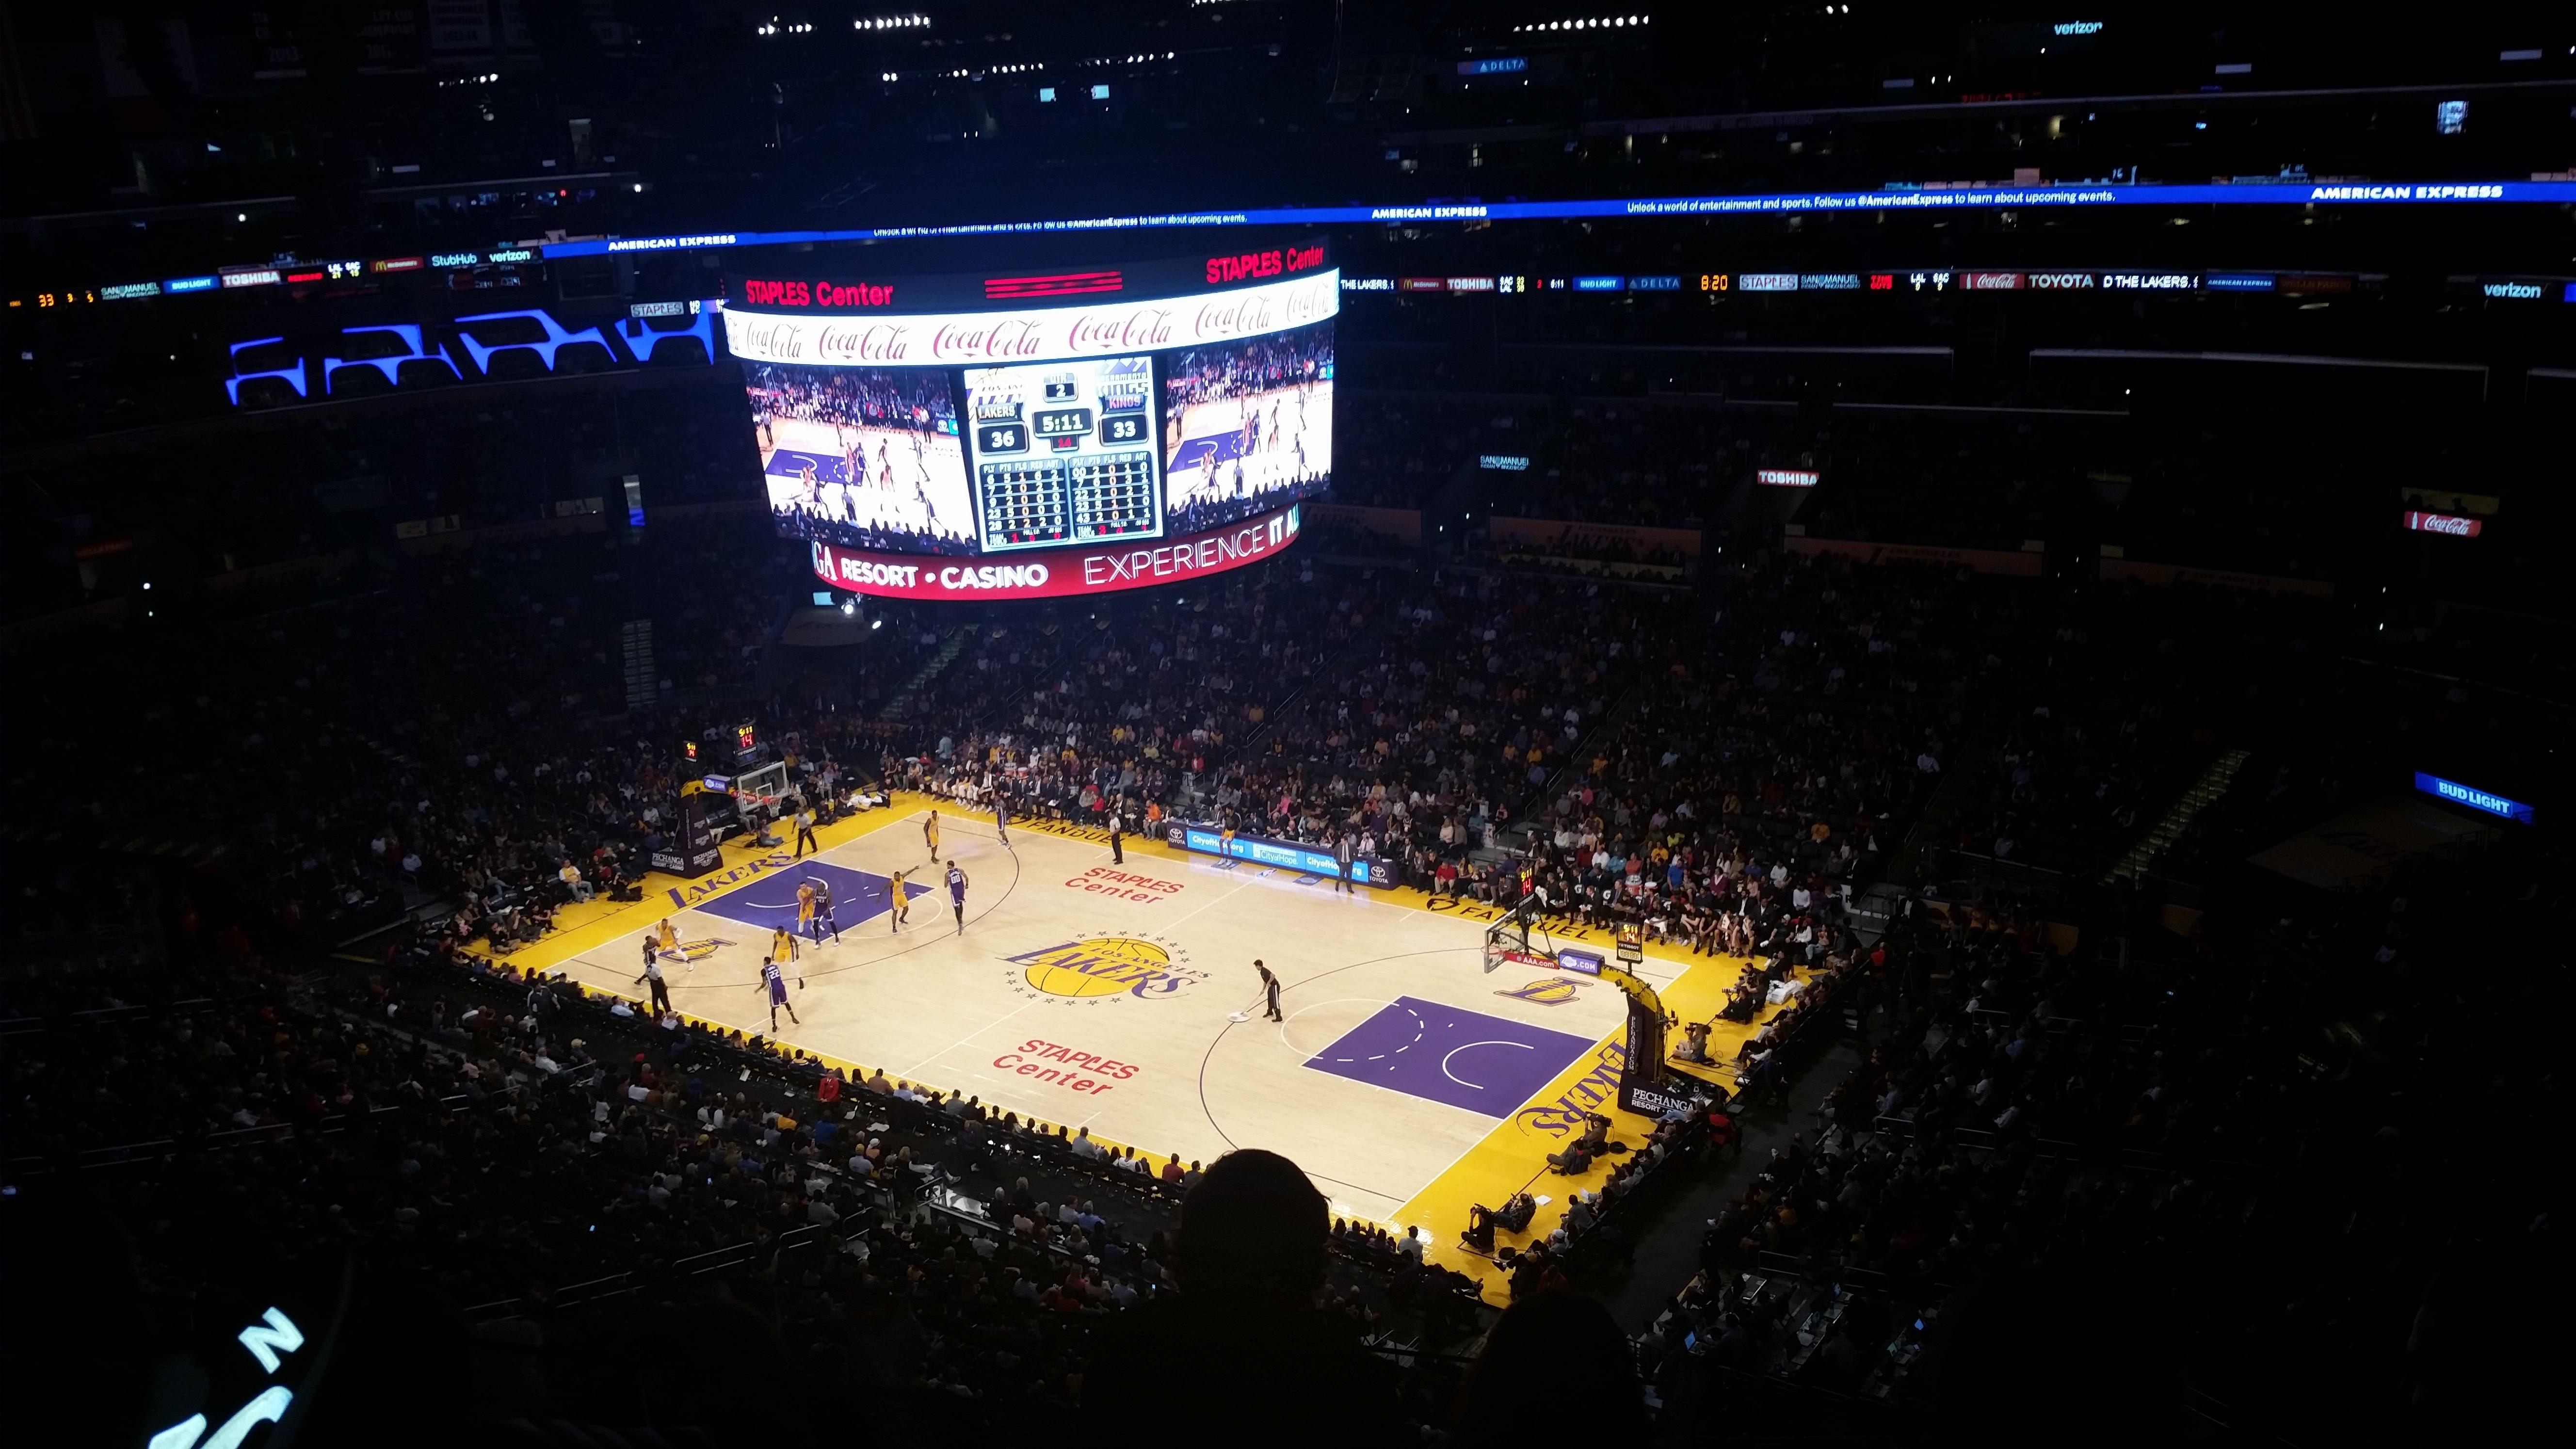 Staples Center Section 315 Row 3 Seat 1